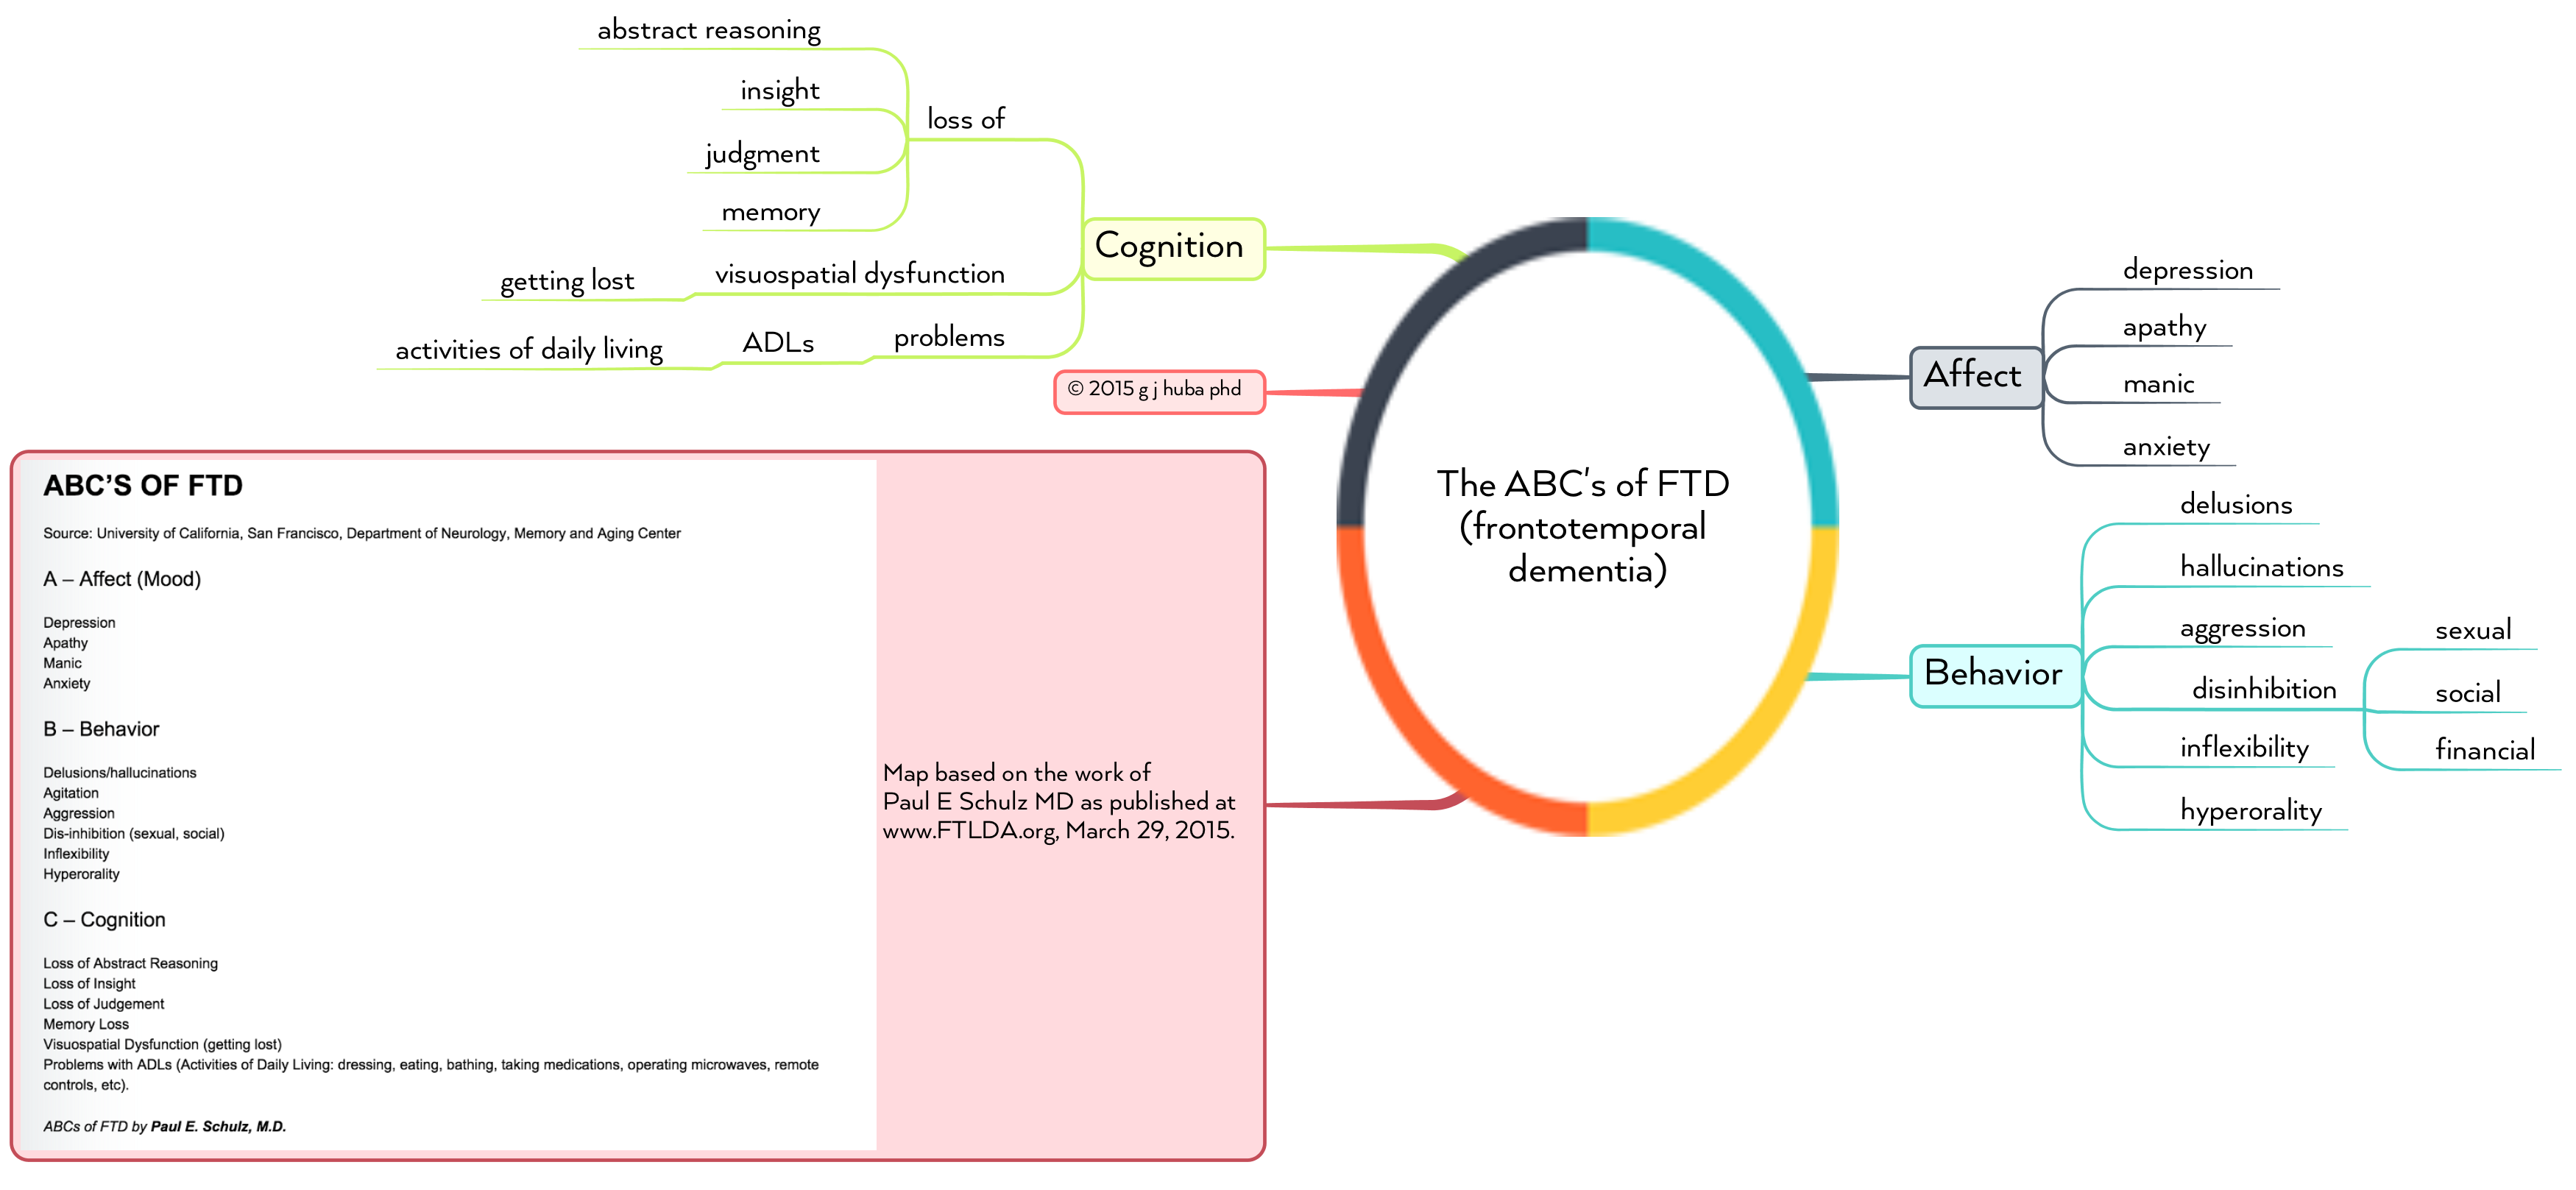 2The ABC's of FTD (frontotemporal dementia)